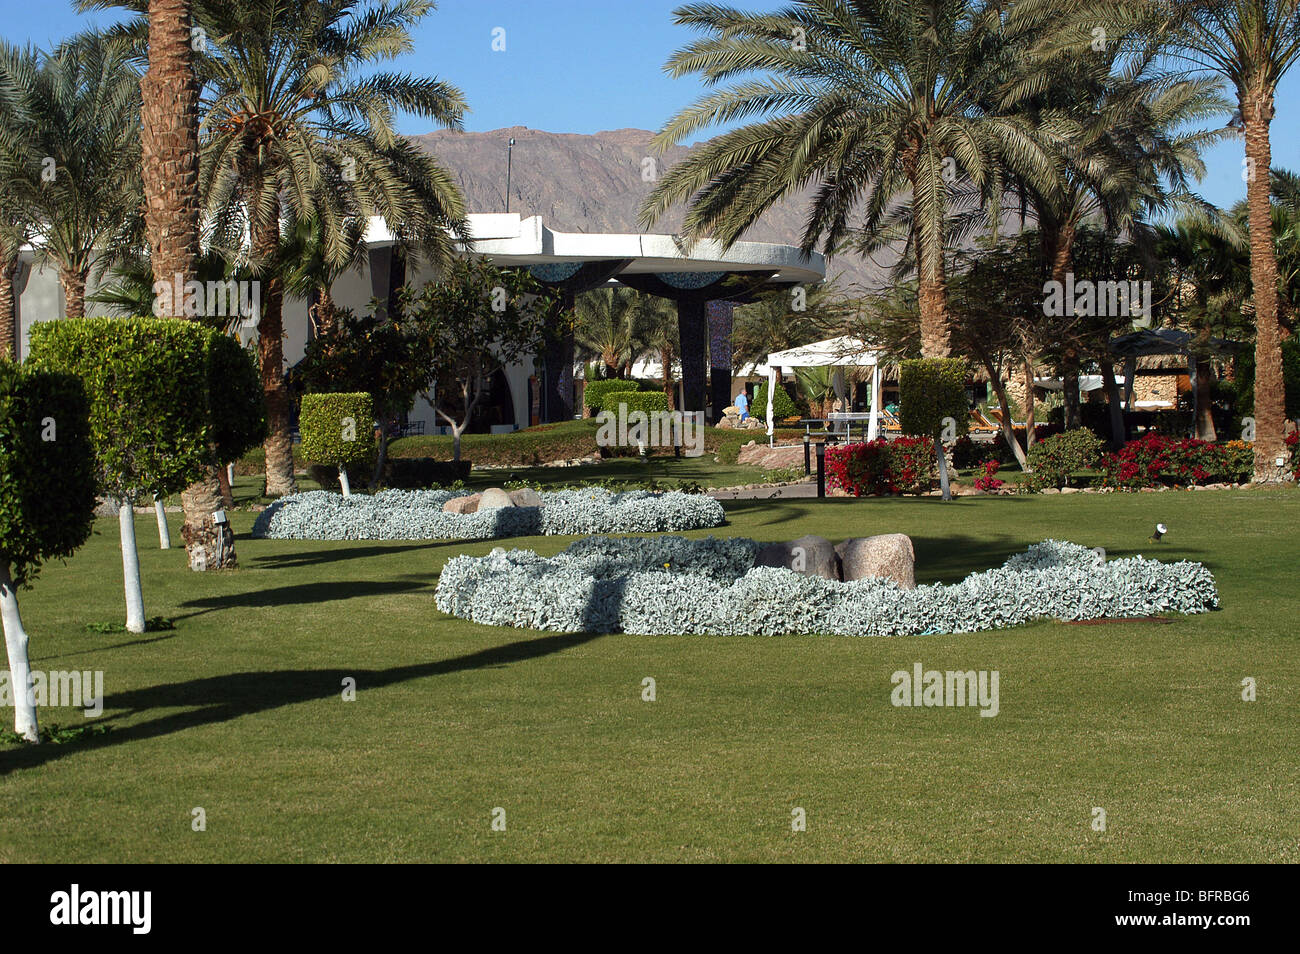 The gardens at the Coral Hilton Hotel, Nuweiba, Egypt - Stock Image